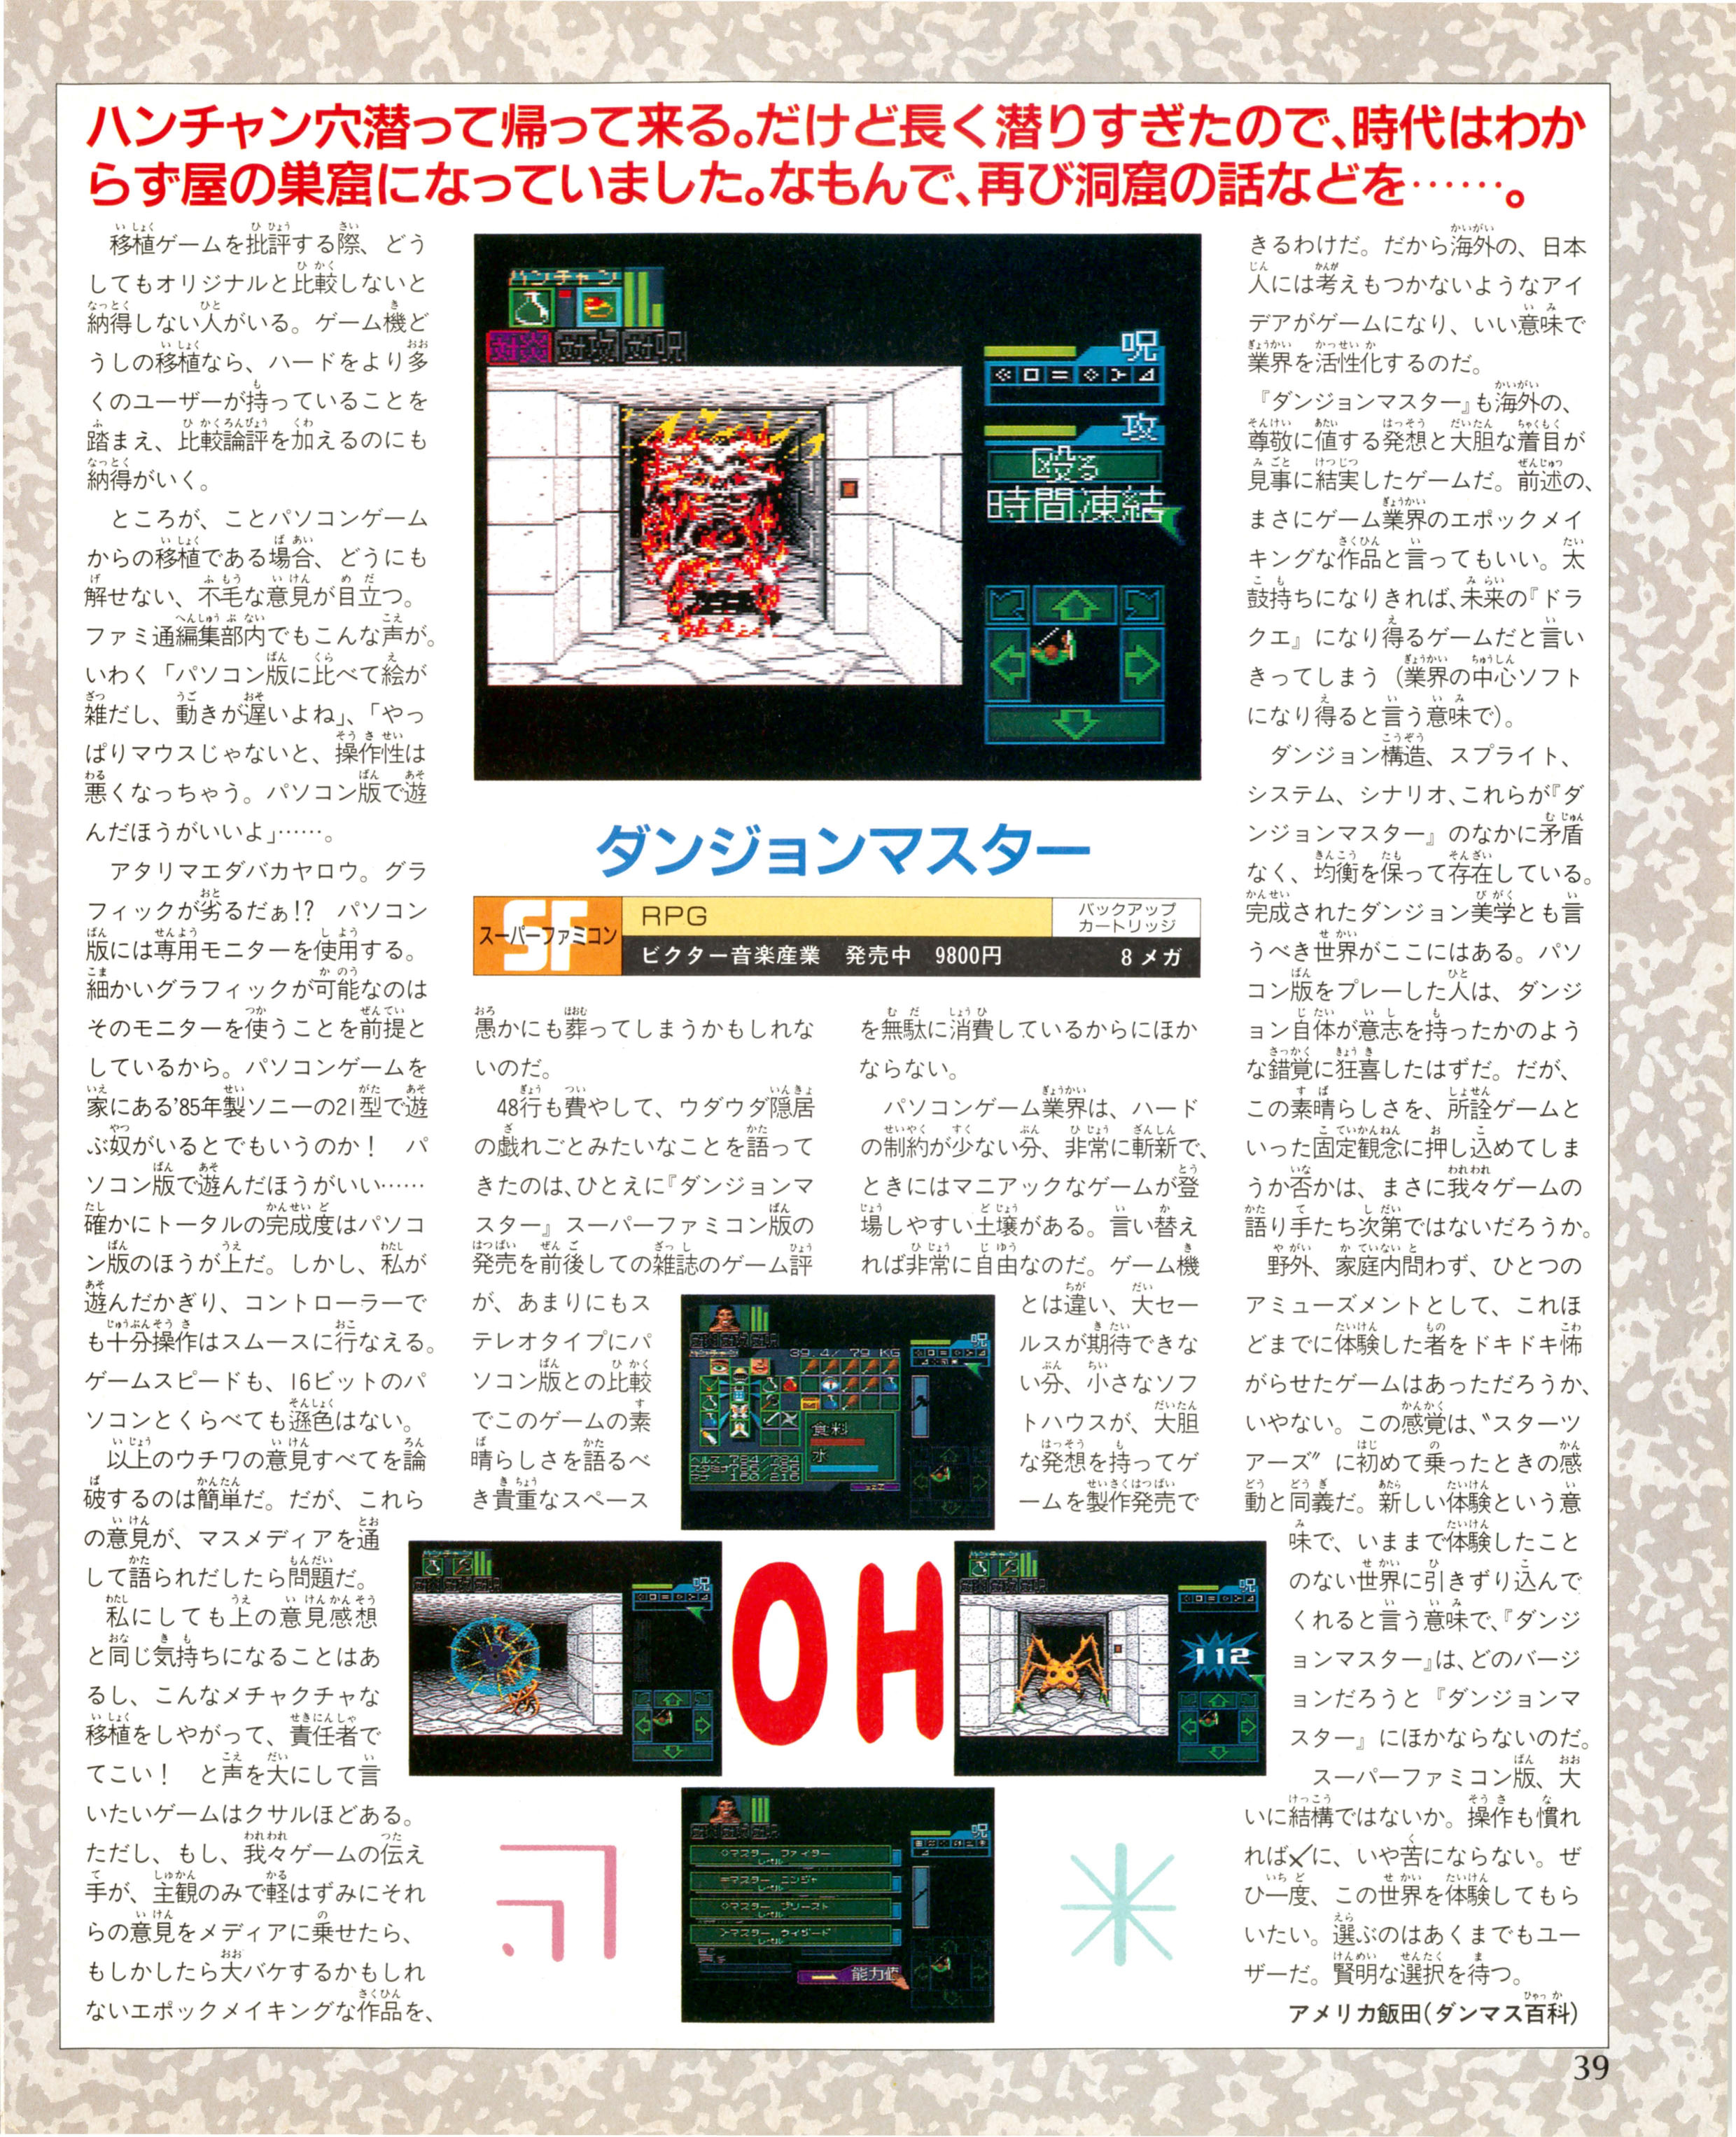 Dungeon Master for Super Famicom Article published in Japanese magazine 'Famitsu', Issue #165 14 February 1992, Page 39